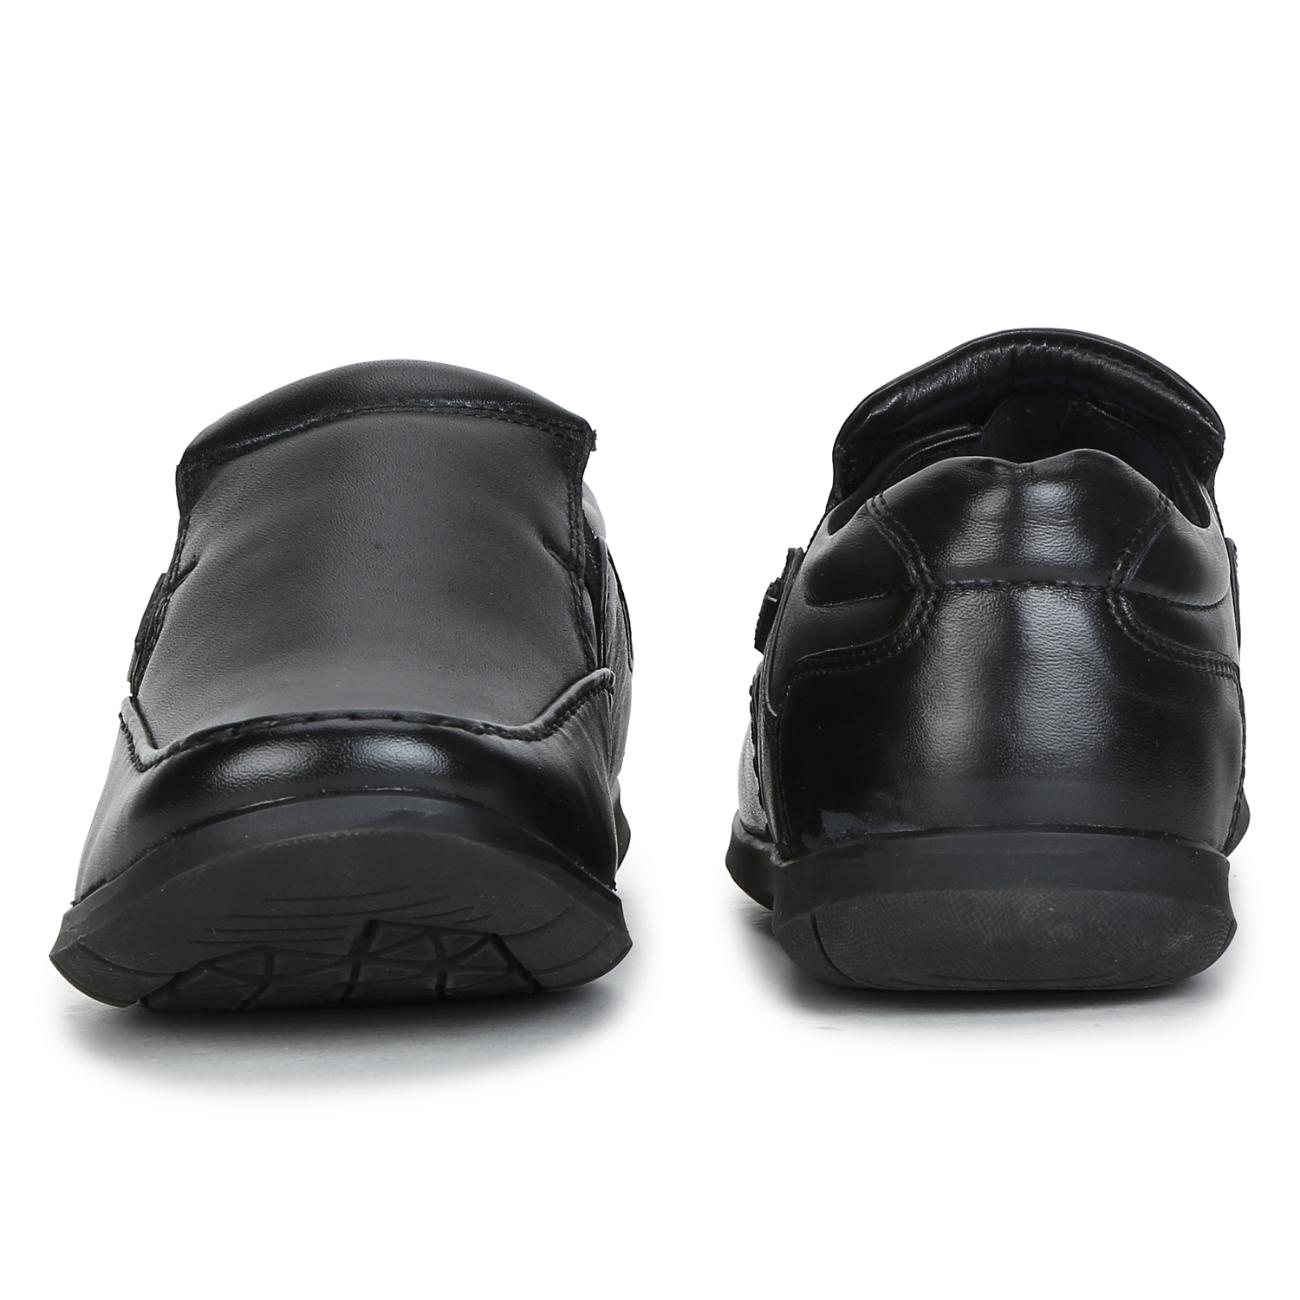 black leather slip-on formal shoes top view